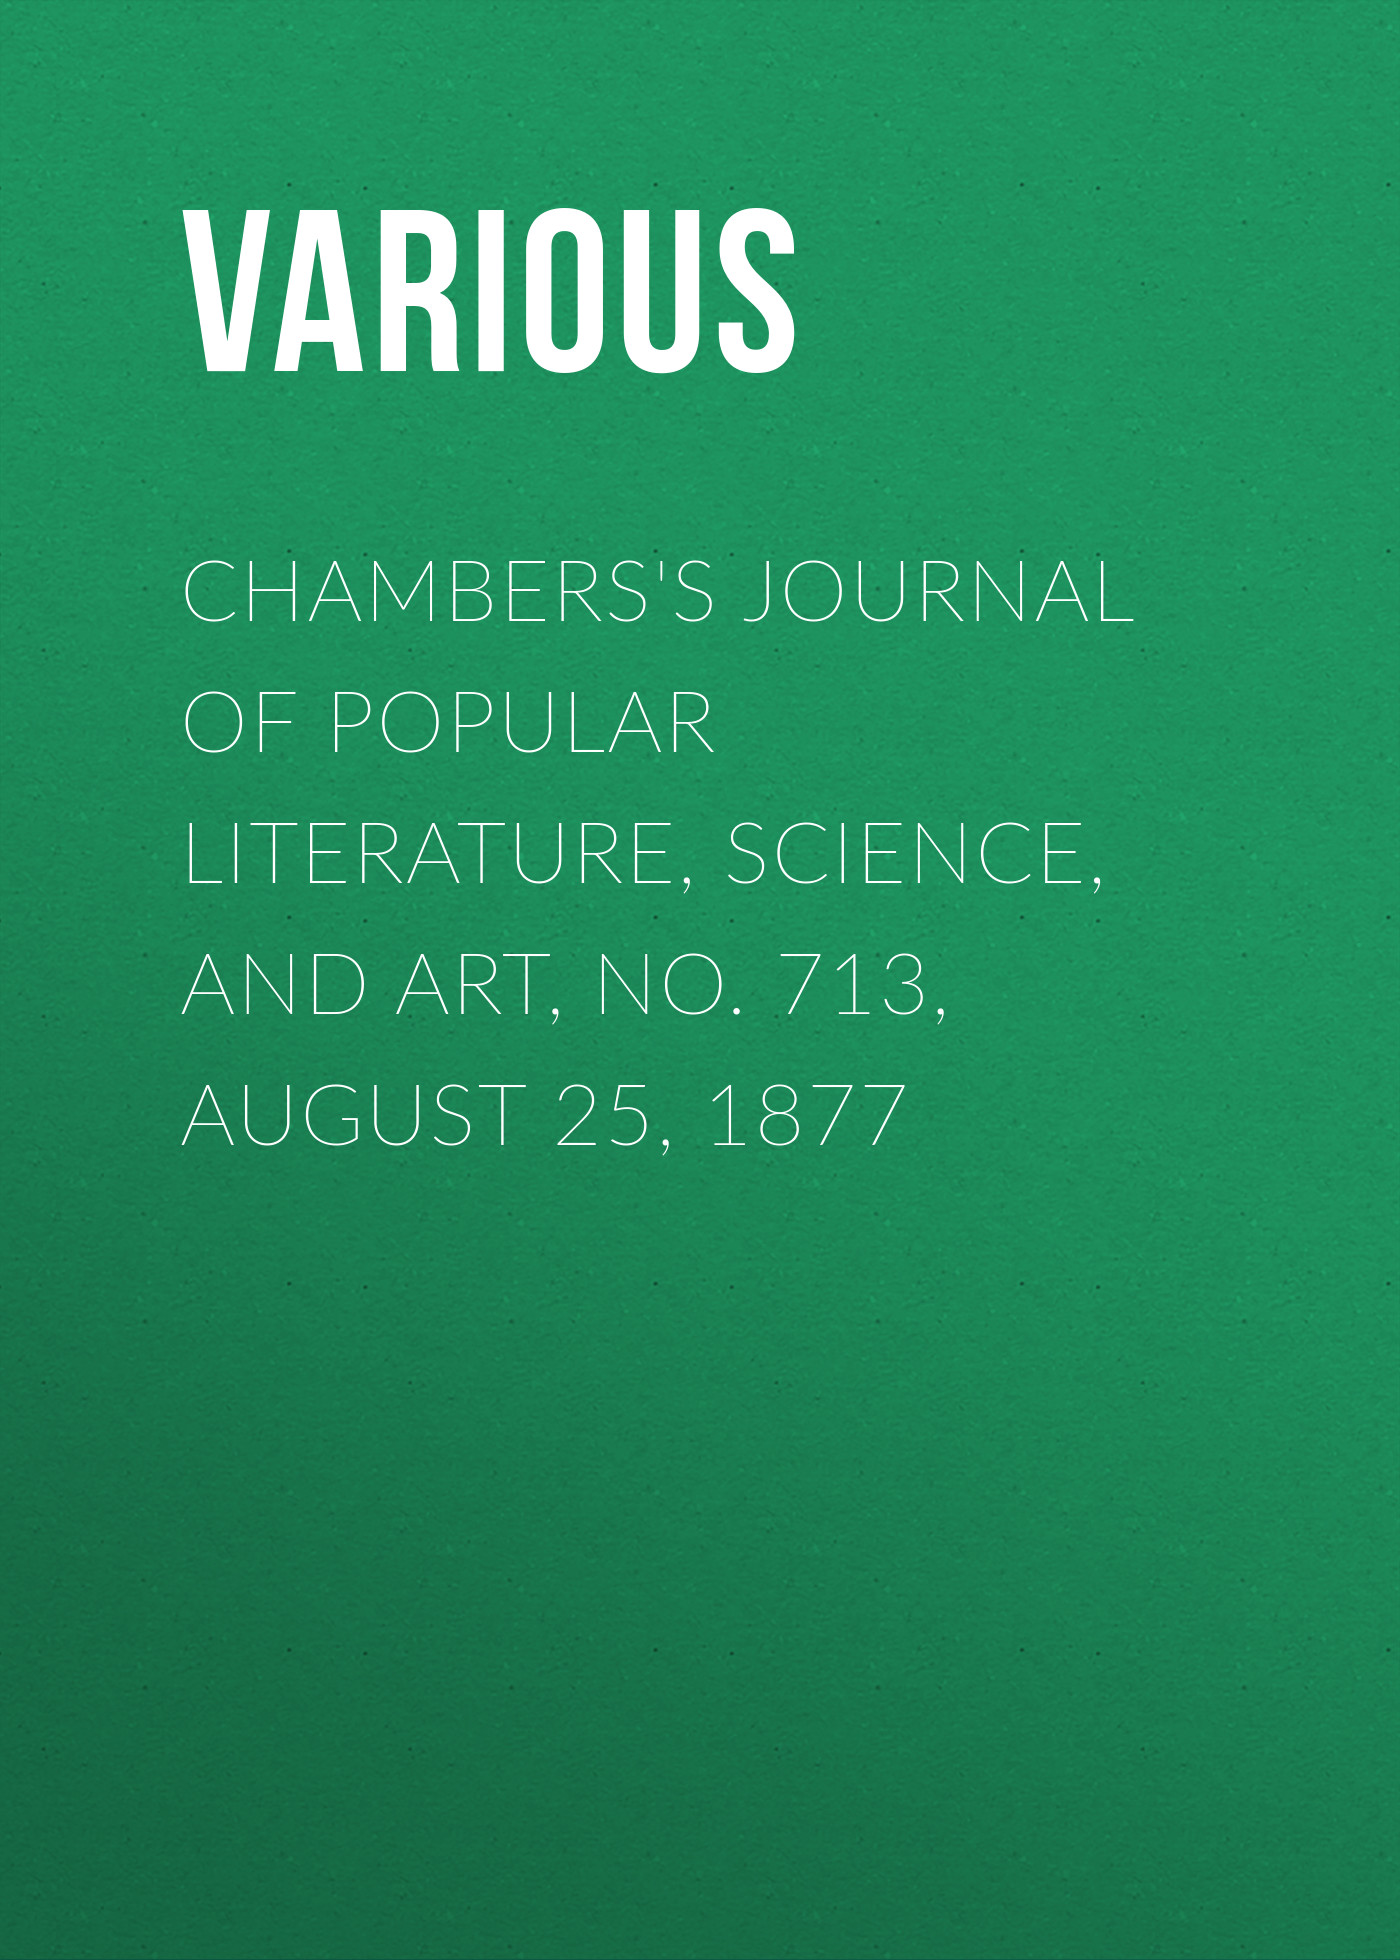 цена Various Chambers's Journal of Popular Literature, Science, and Art, No. 713, August 25, 1877